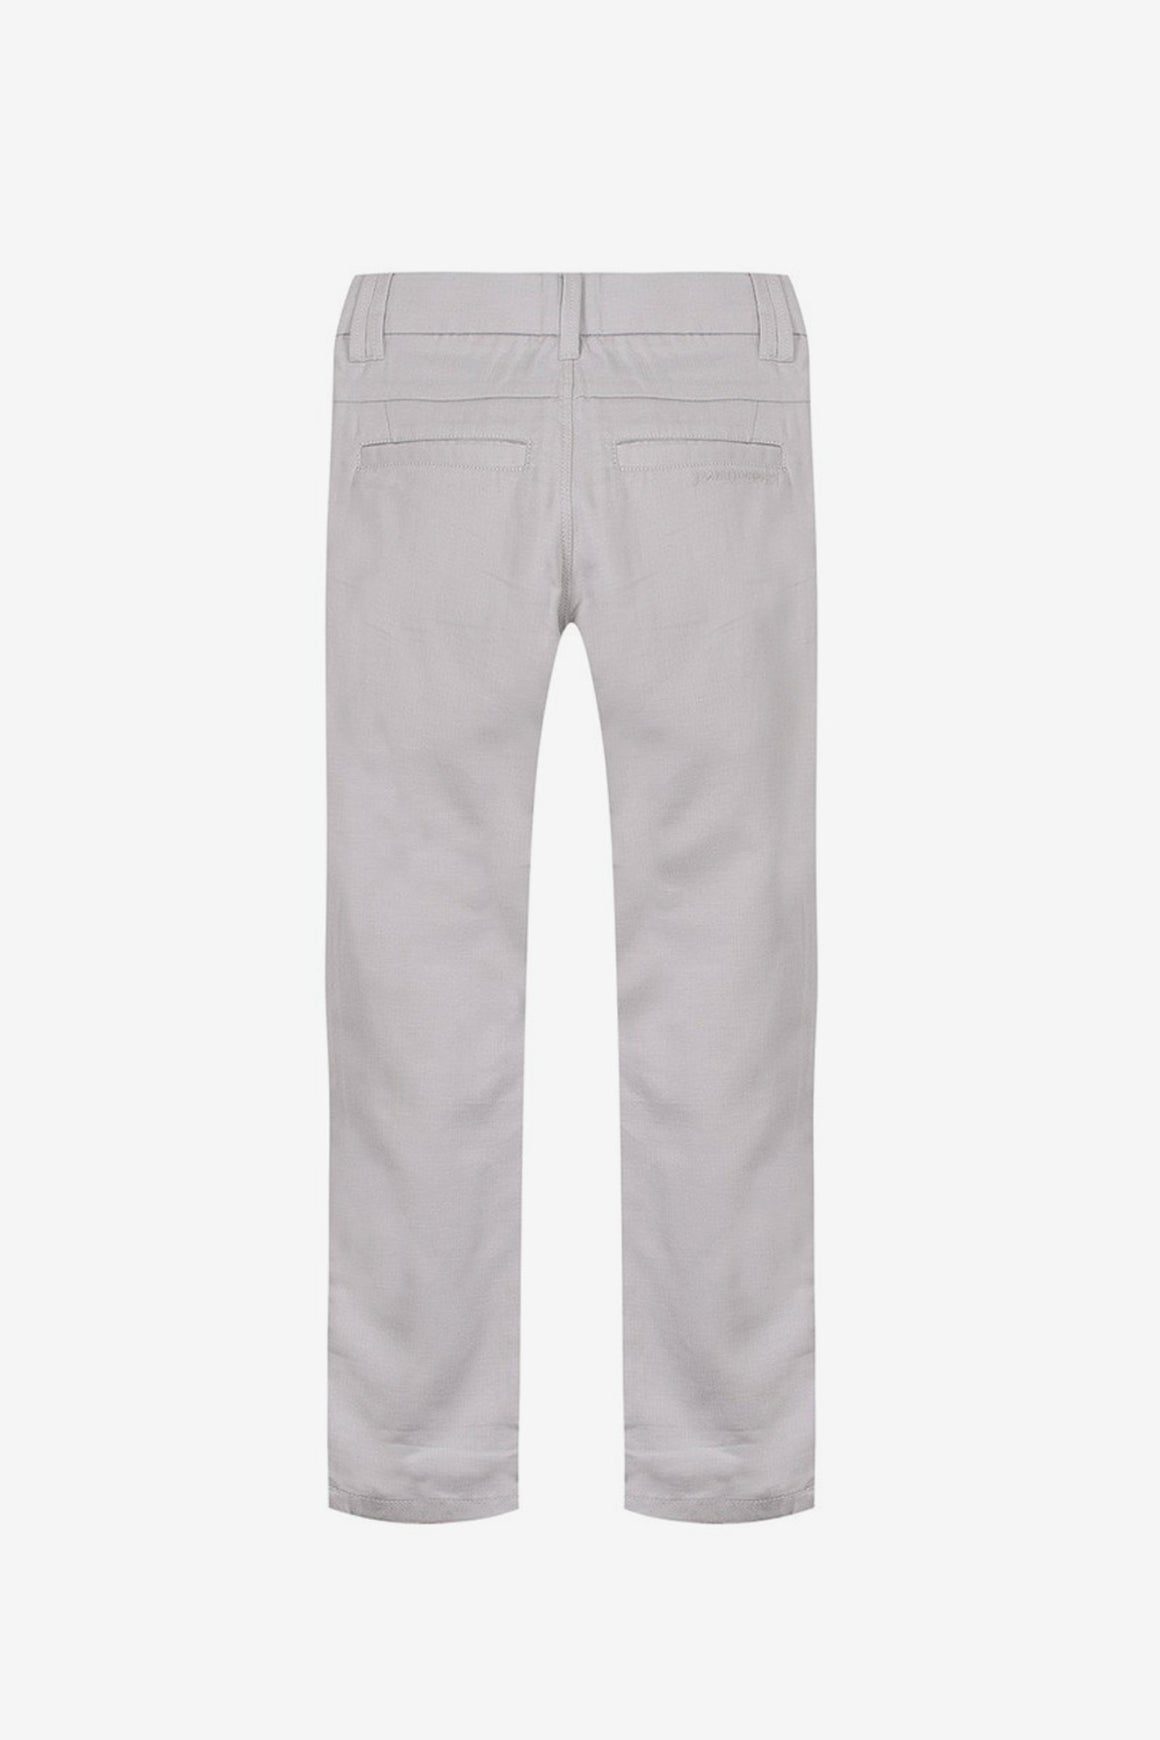 Jean Bourget Classic Chinos